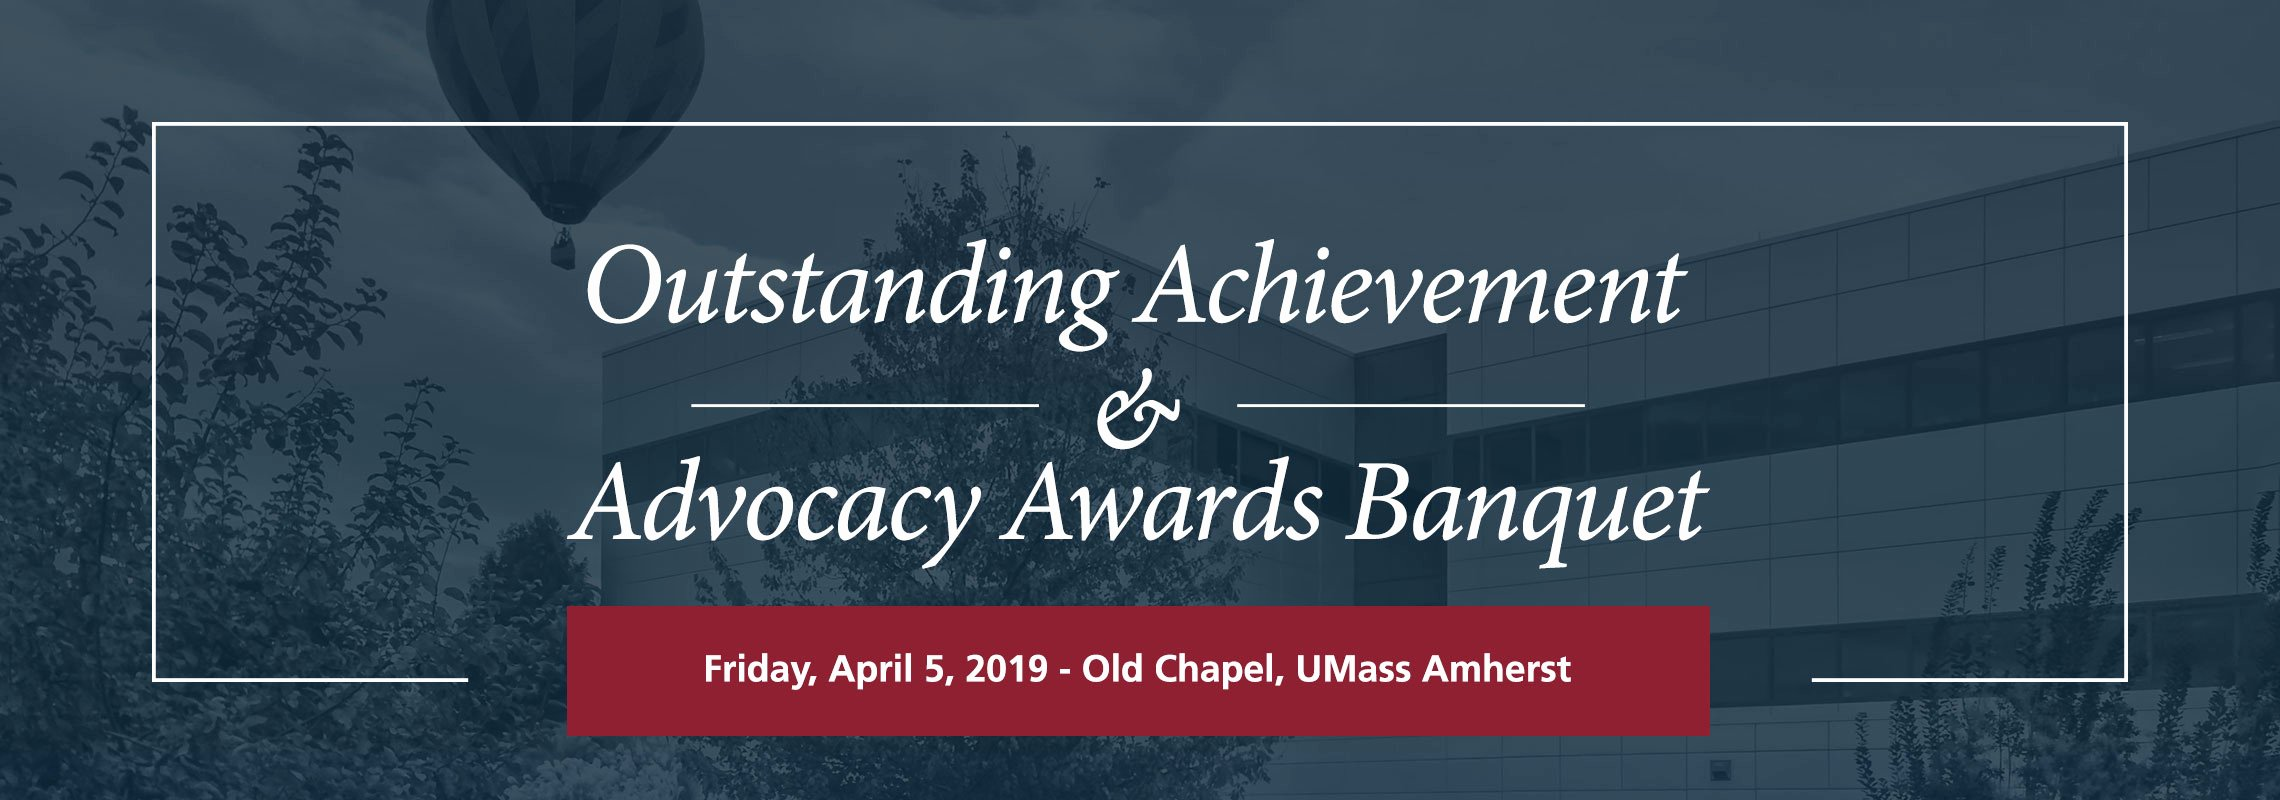 Outstanding Achievement Award Template Awesome 2019 Outstanding Achievement & Advocacy Awards